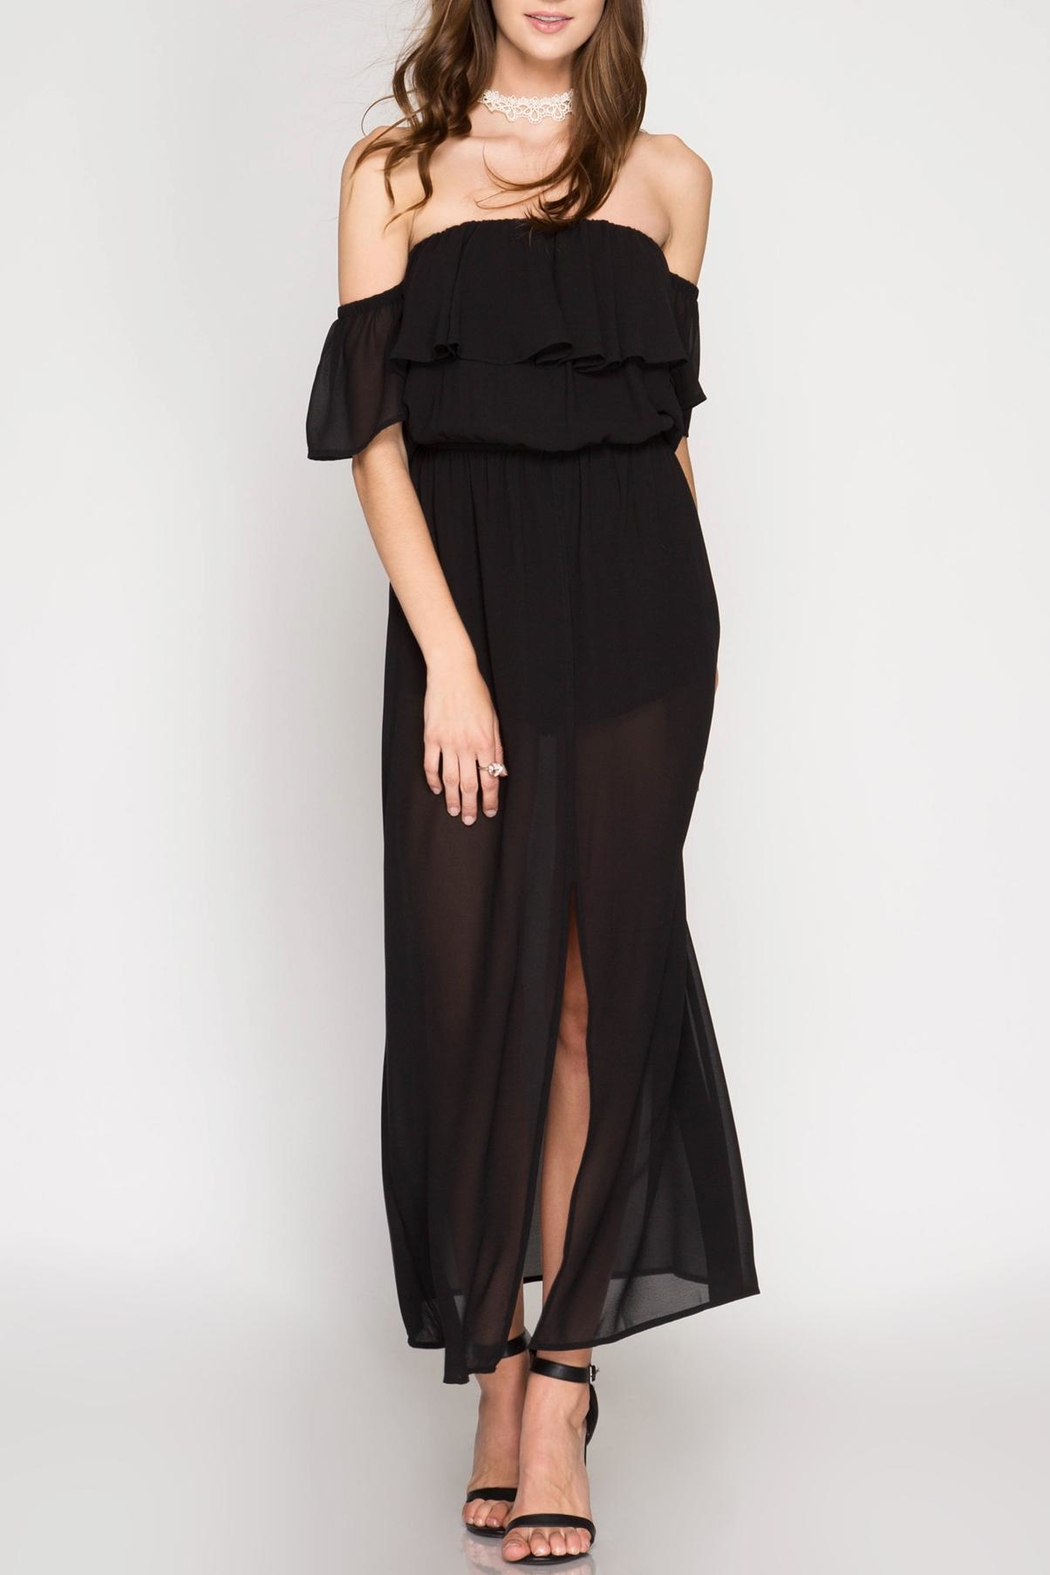 She + Sky Off-Shoulder Maxi Romper - Main Image